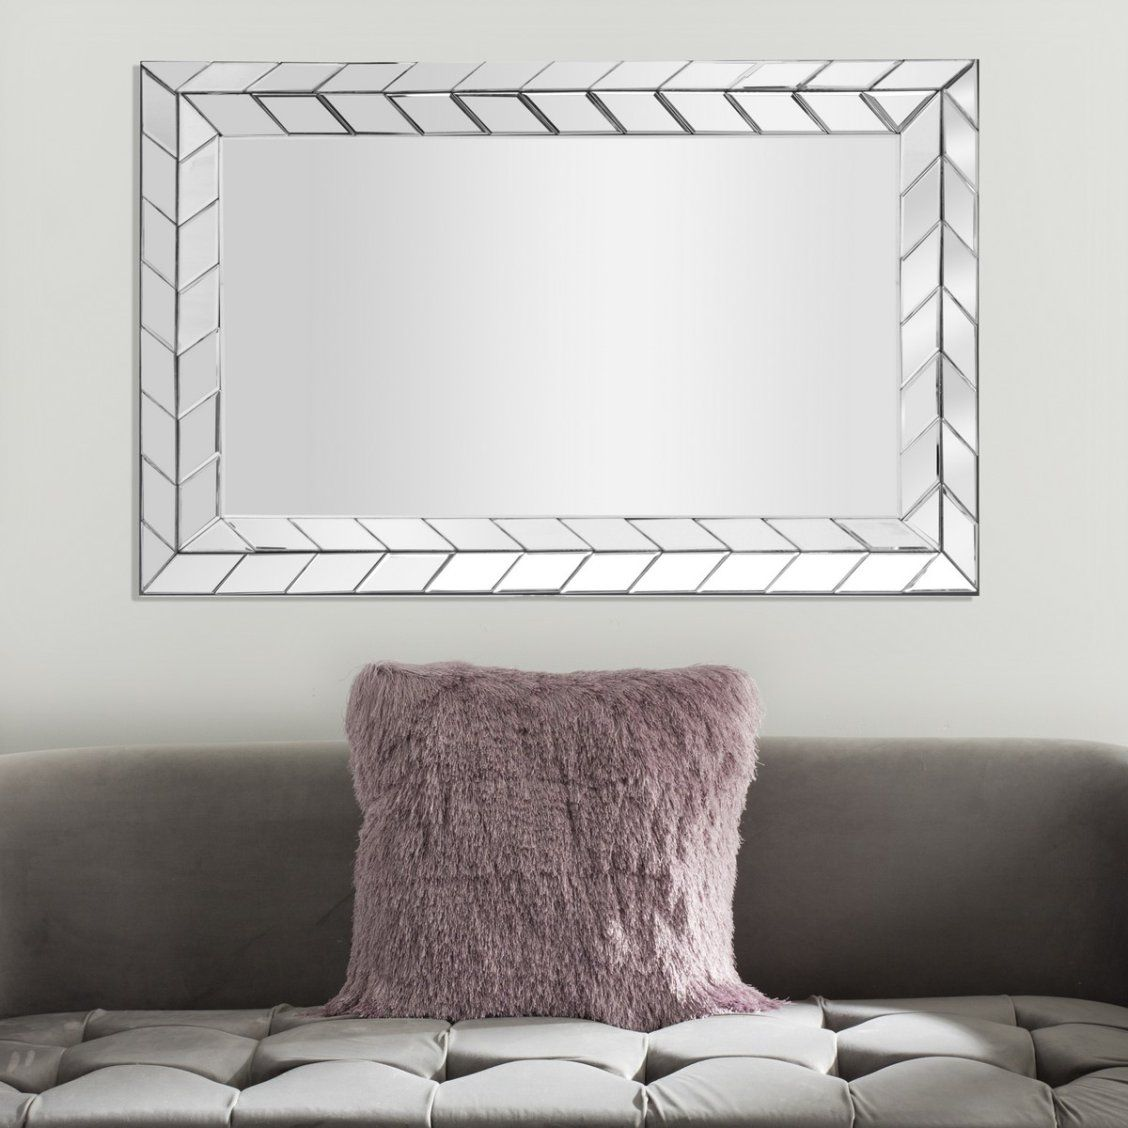 Inspired By The Sleek Art Deco Style This Contemporary Silver Mirror Is A New Classic Its Arrow Border Design B Framed Mirror Wall Frames On Wall Mirror Wall #silver #mirrors #for #living #room